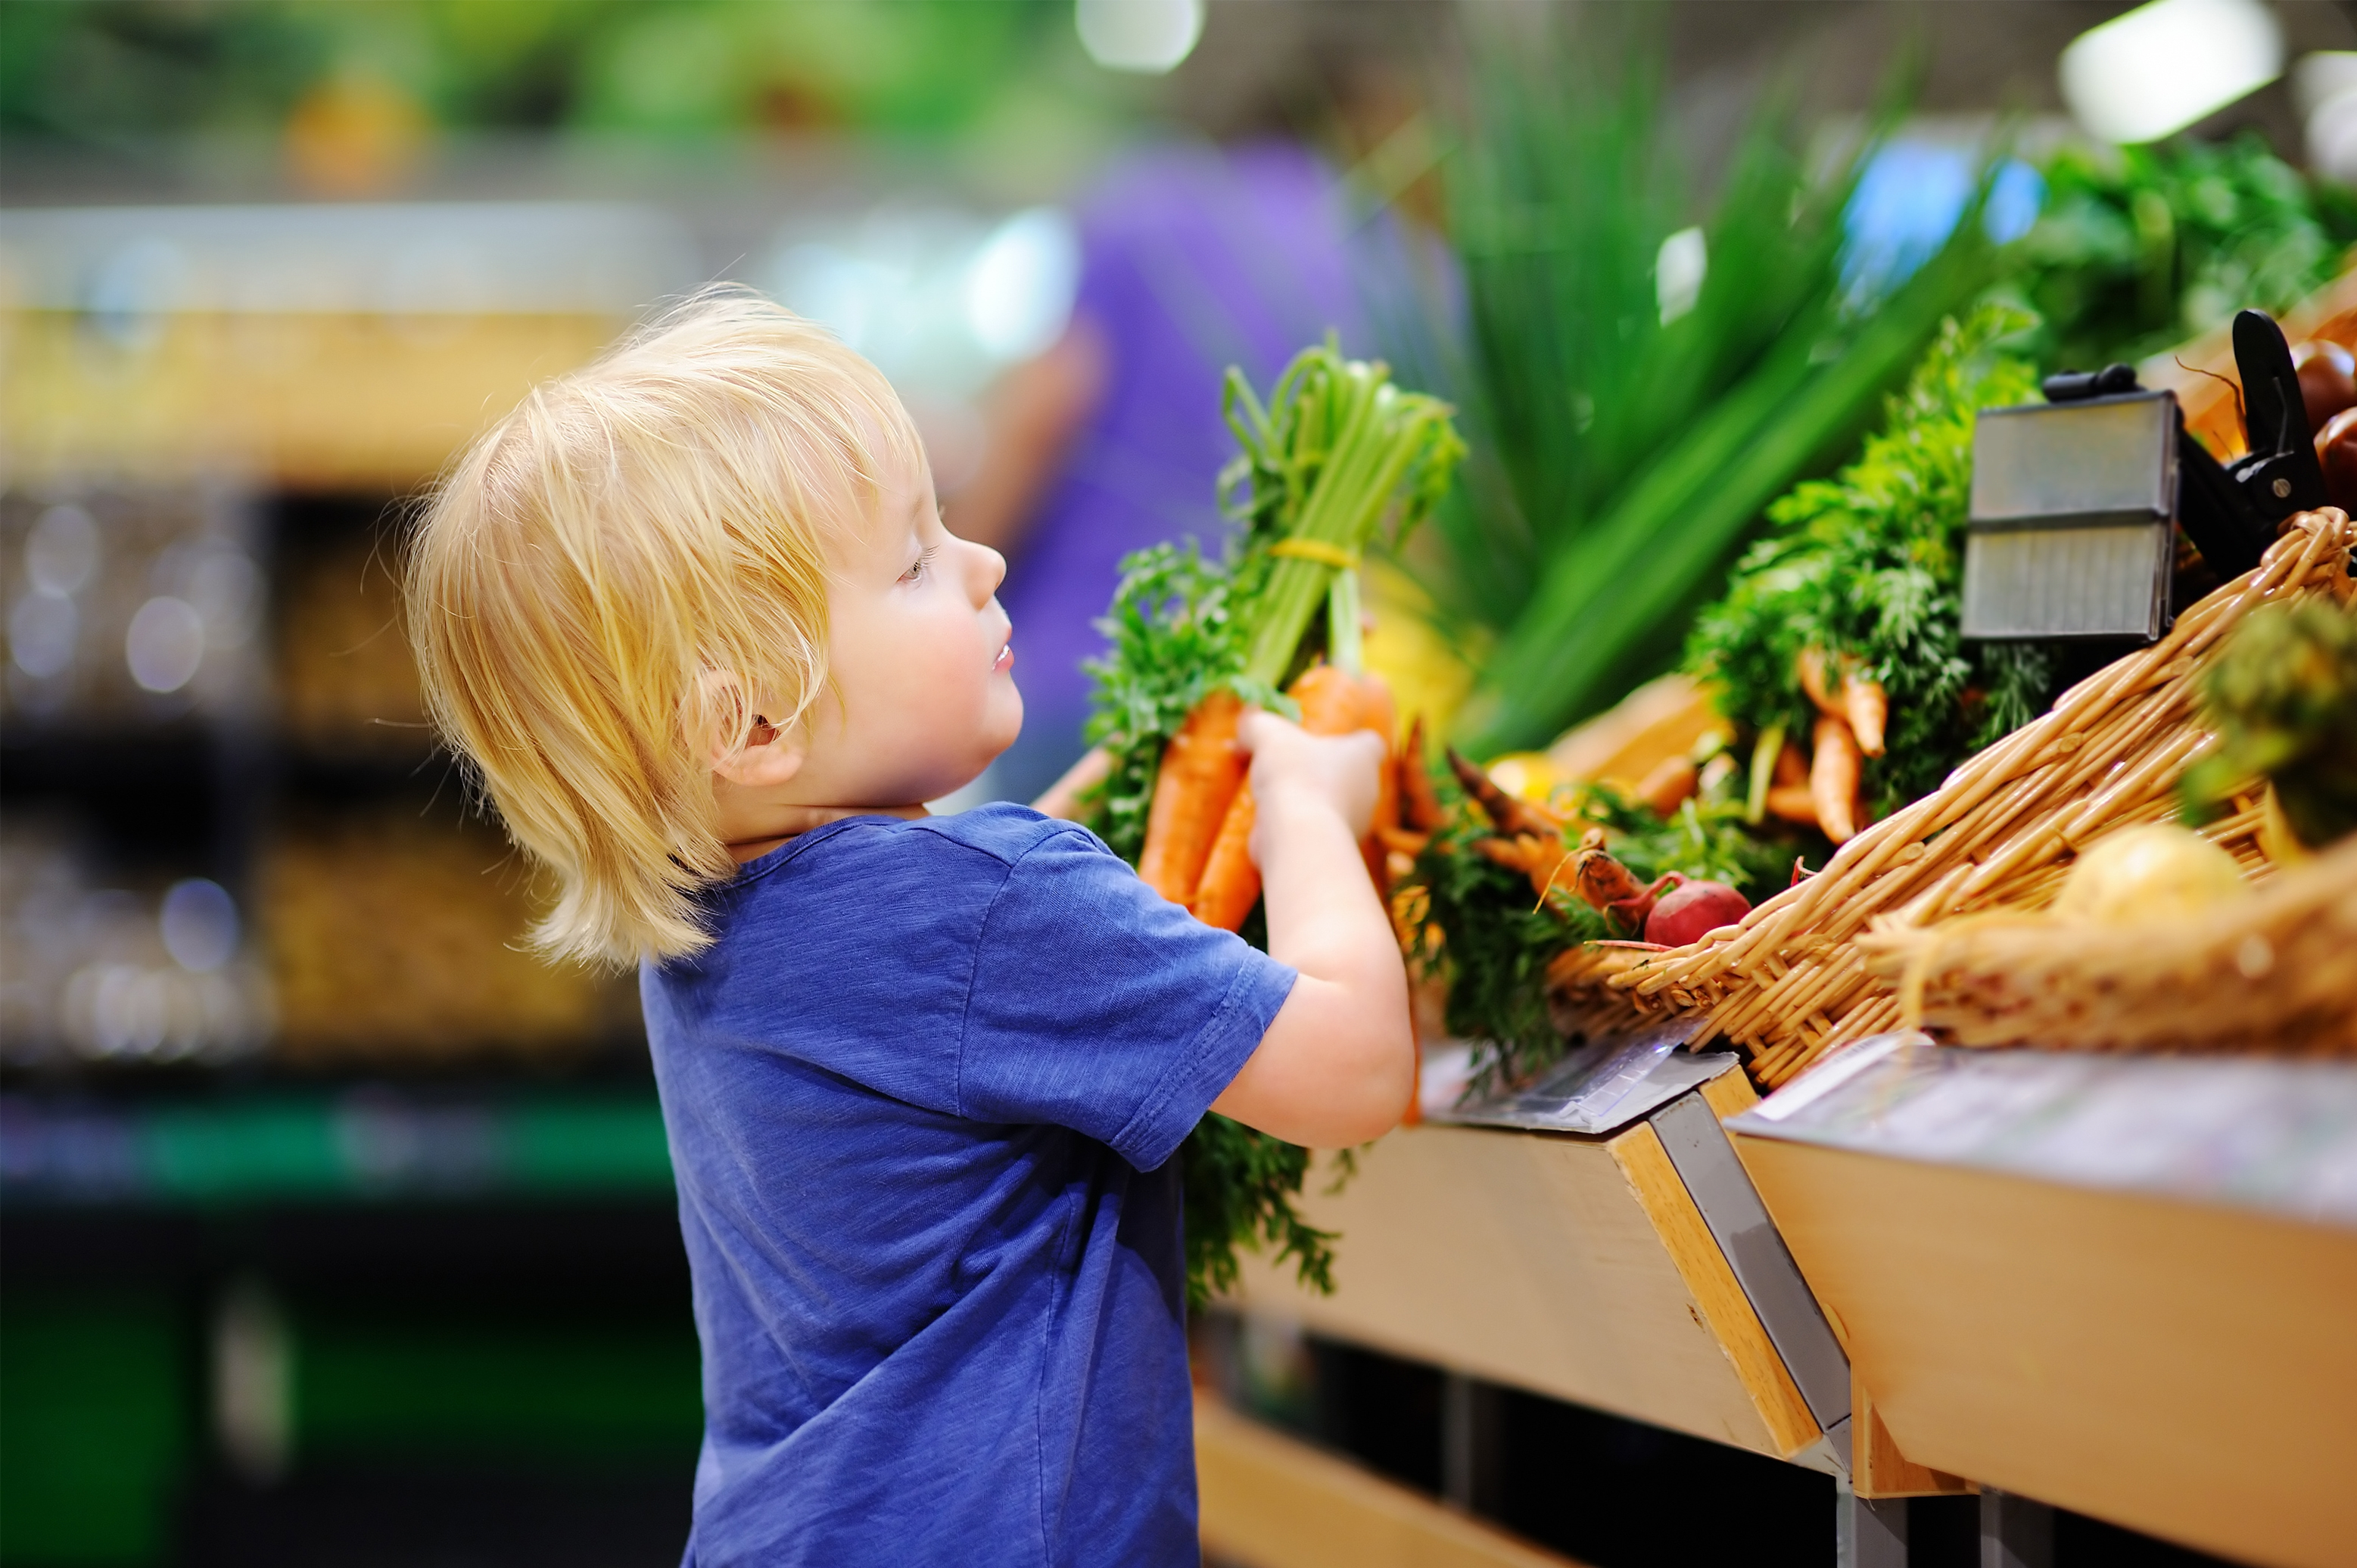 A small child reaches to take some carrots from a shop display